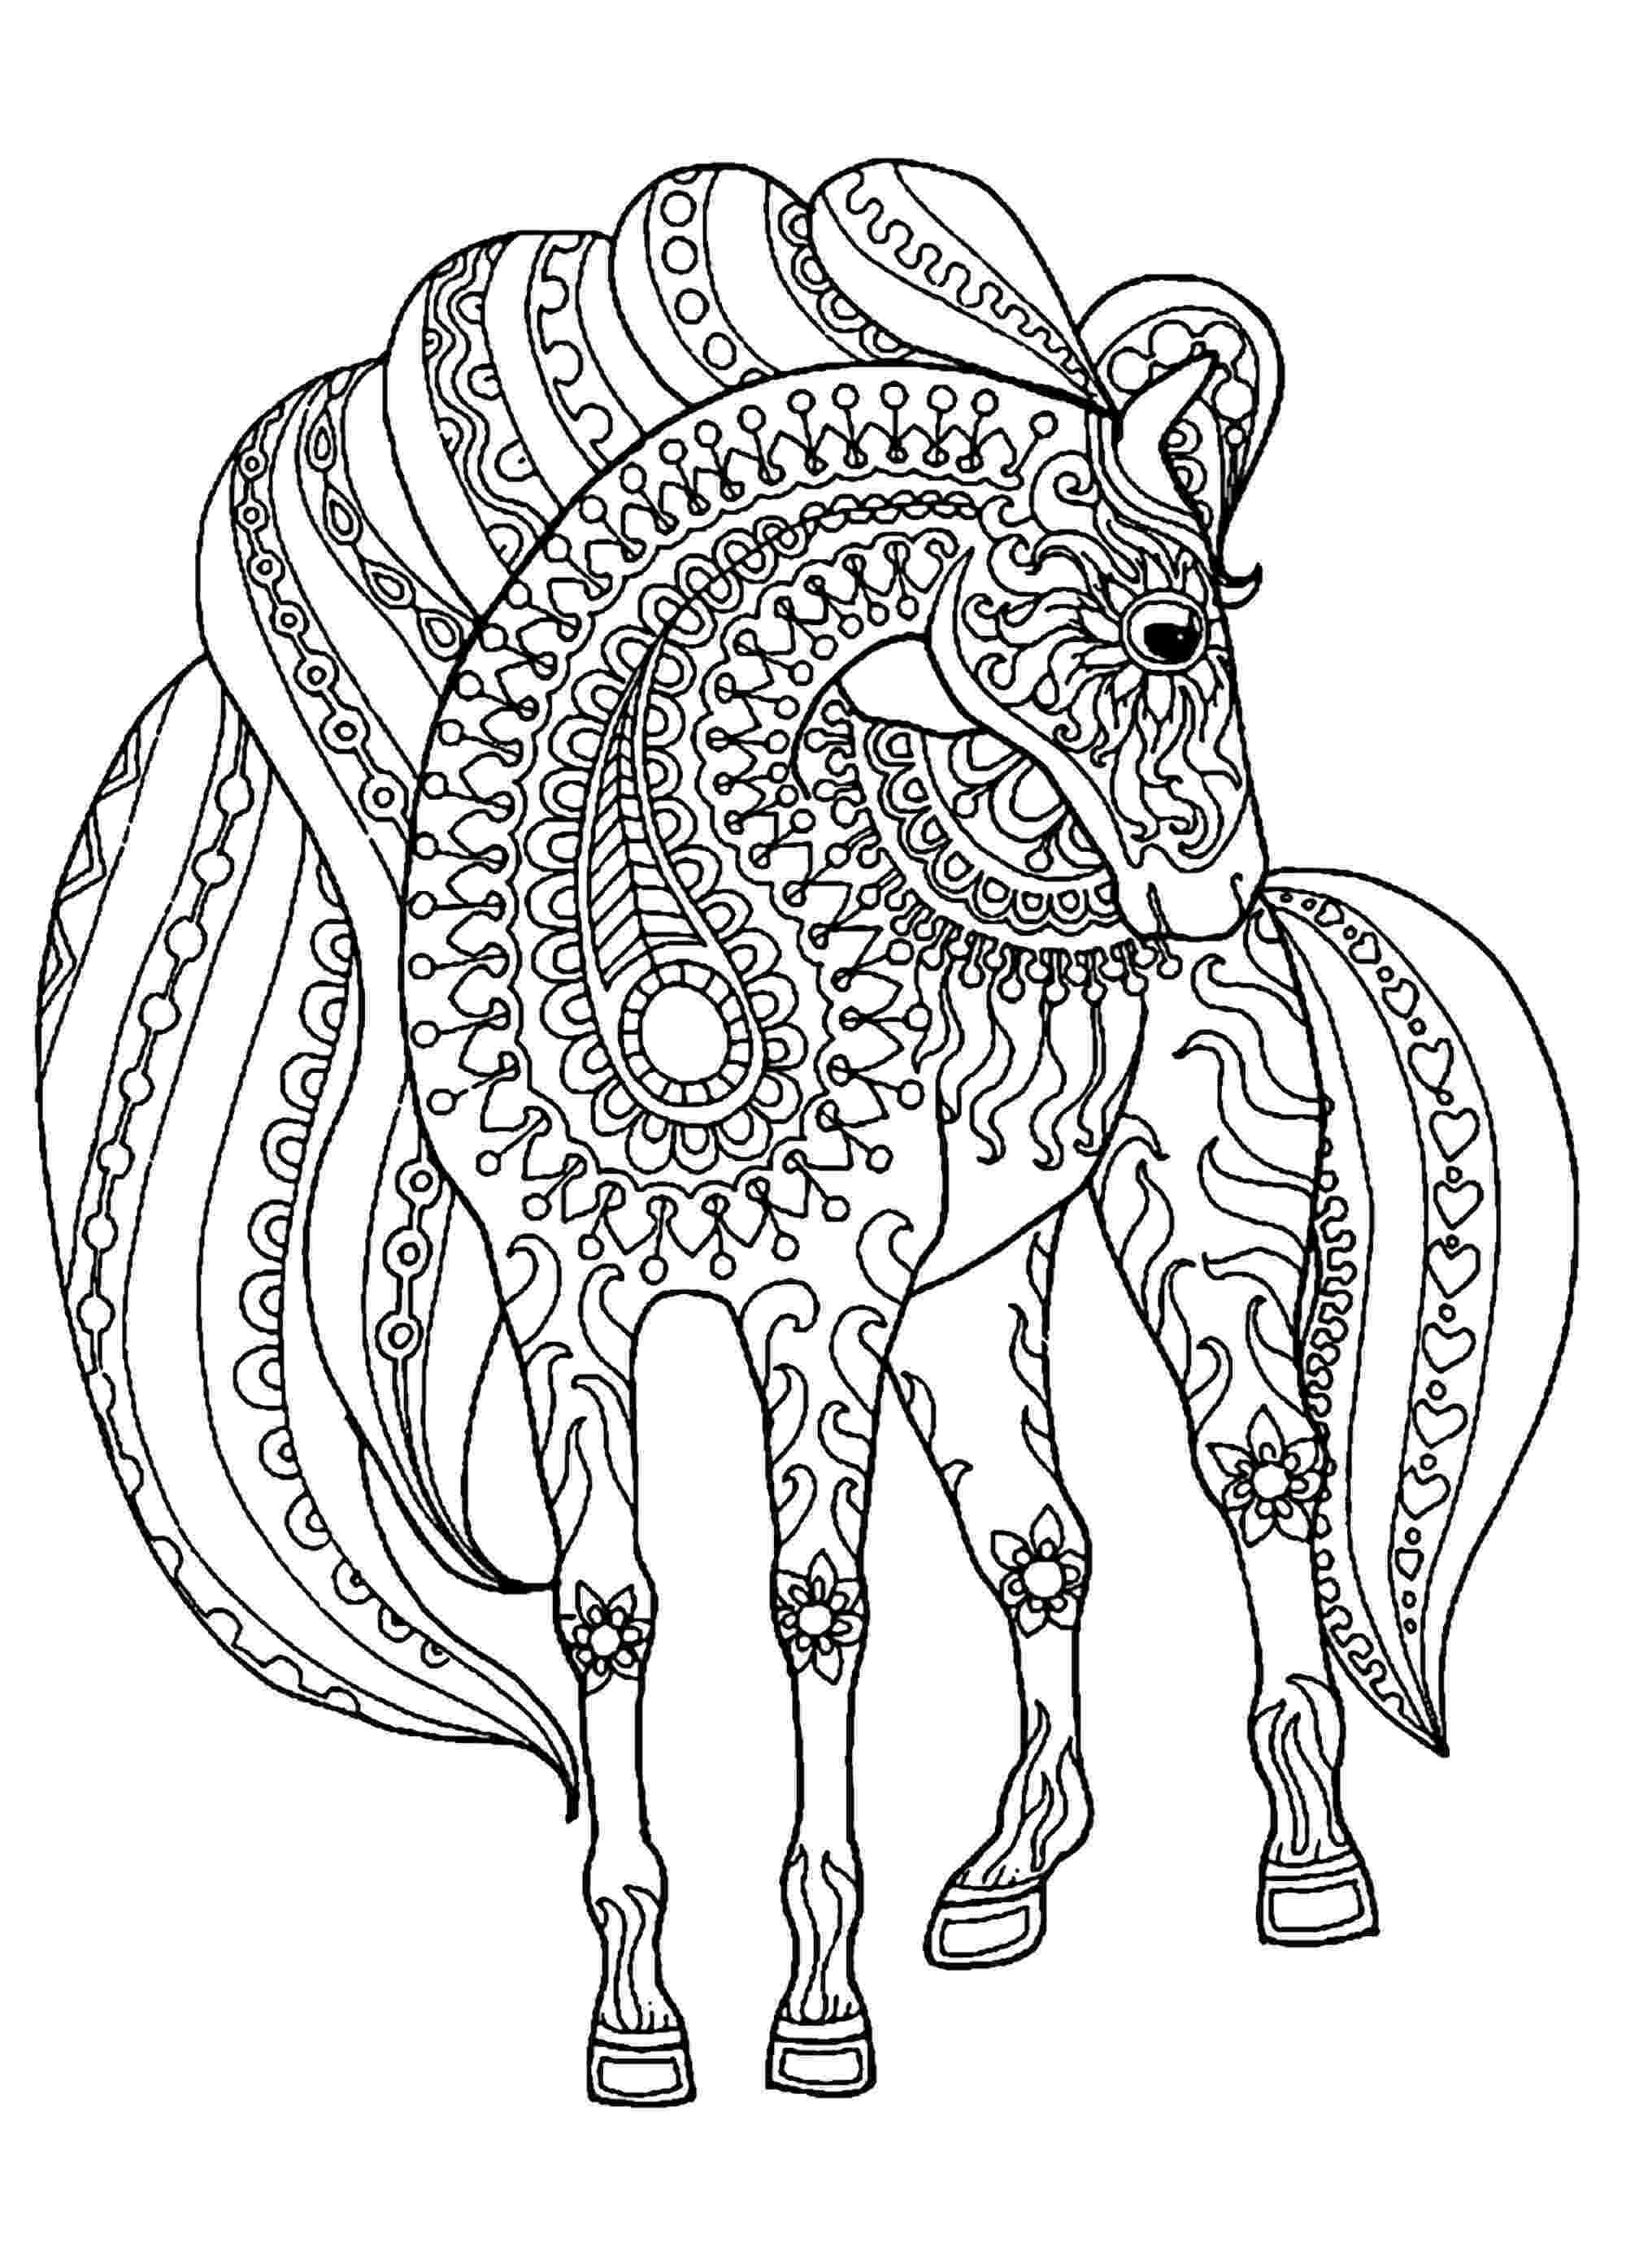 horse colouring horse coloring pages to download and print for free colouring horse